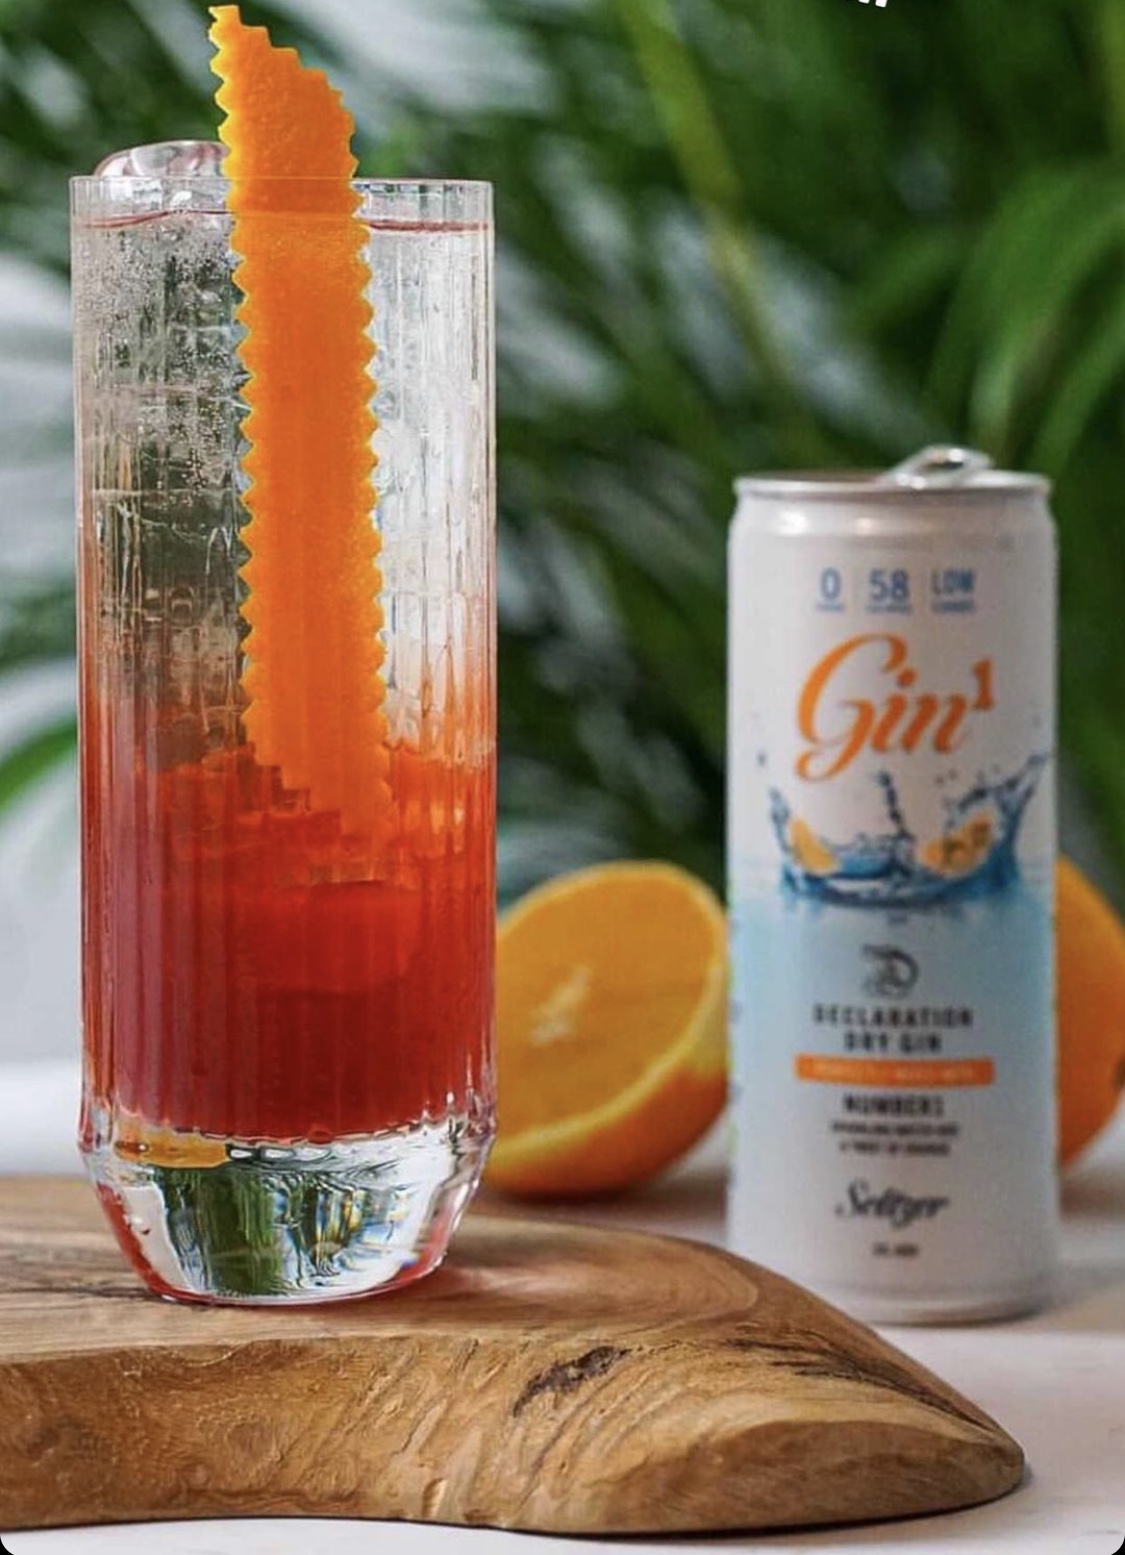 Gin1 Seltzers, Gin & Sparkling Water, Sugar-free, Summer Drink, Low Calorie Drink, Mother's Day Giveaway, Win, Competition, Number1 Drinks, Naturally Flavoured, The Frenchie Mummy